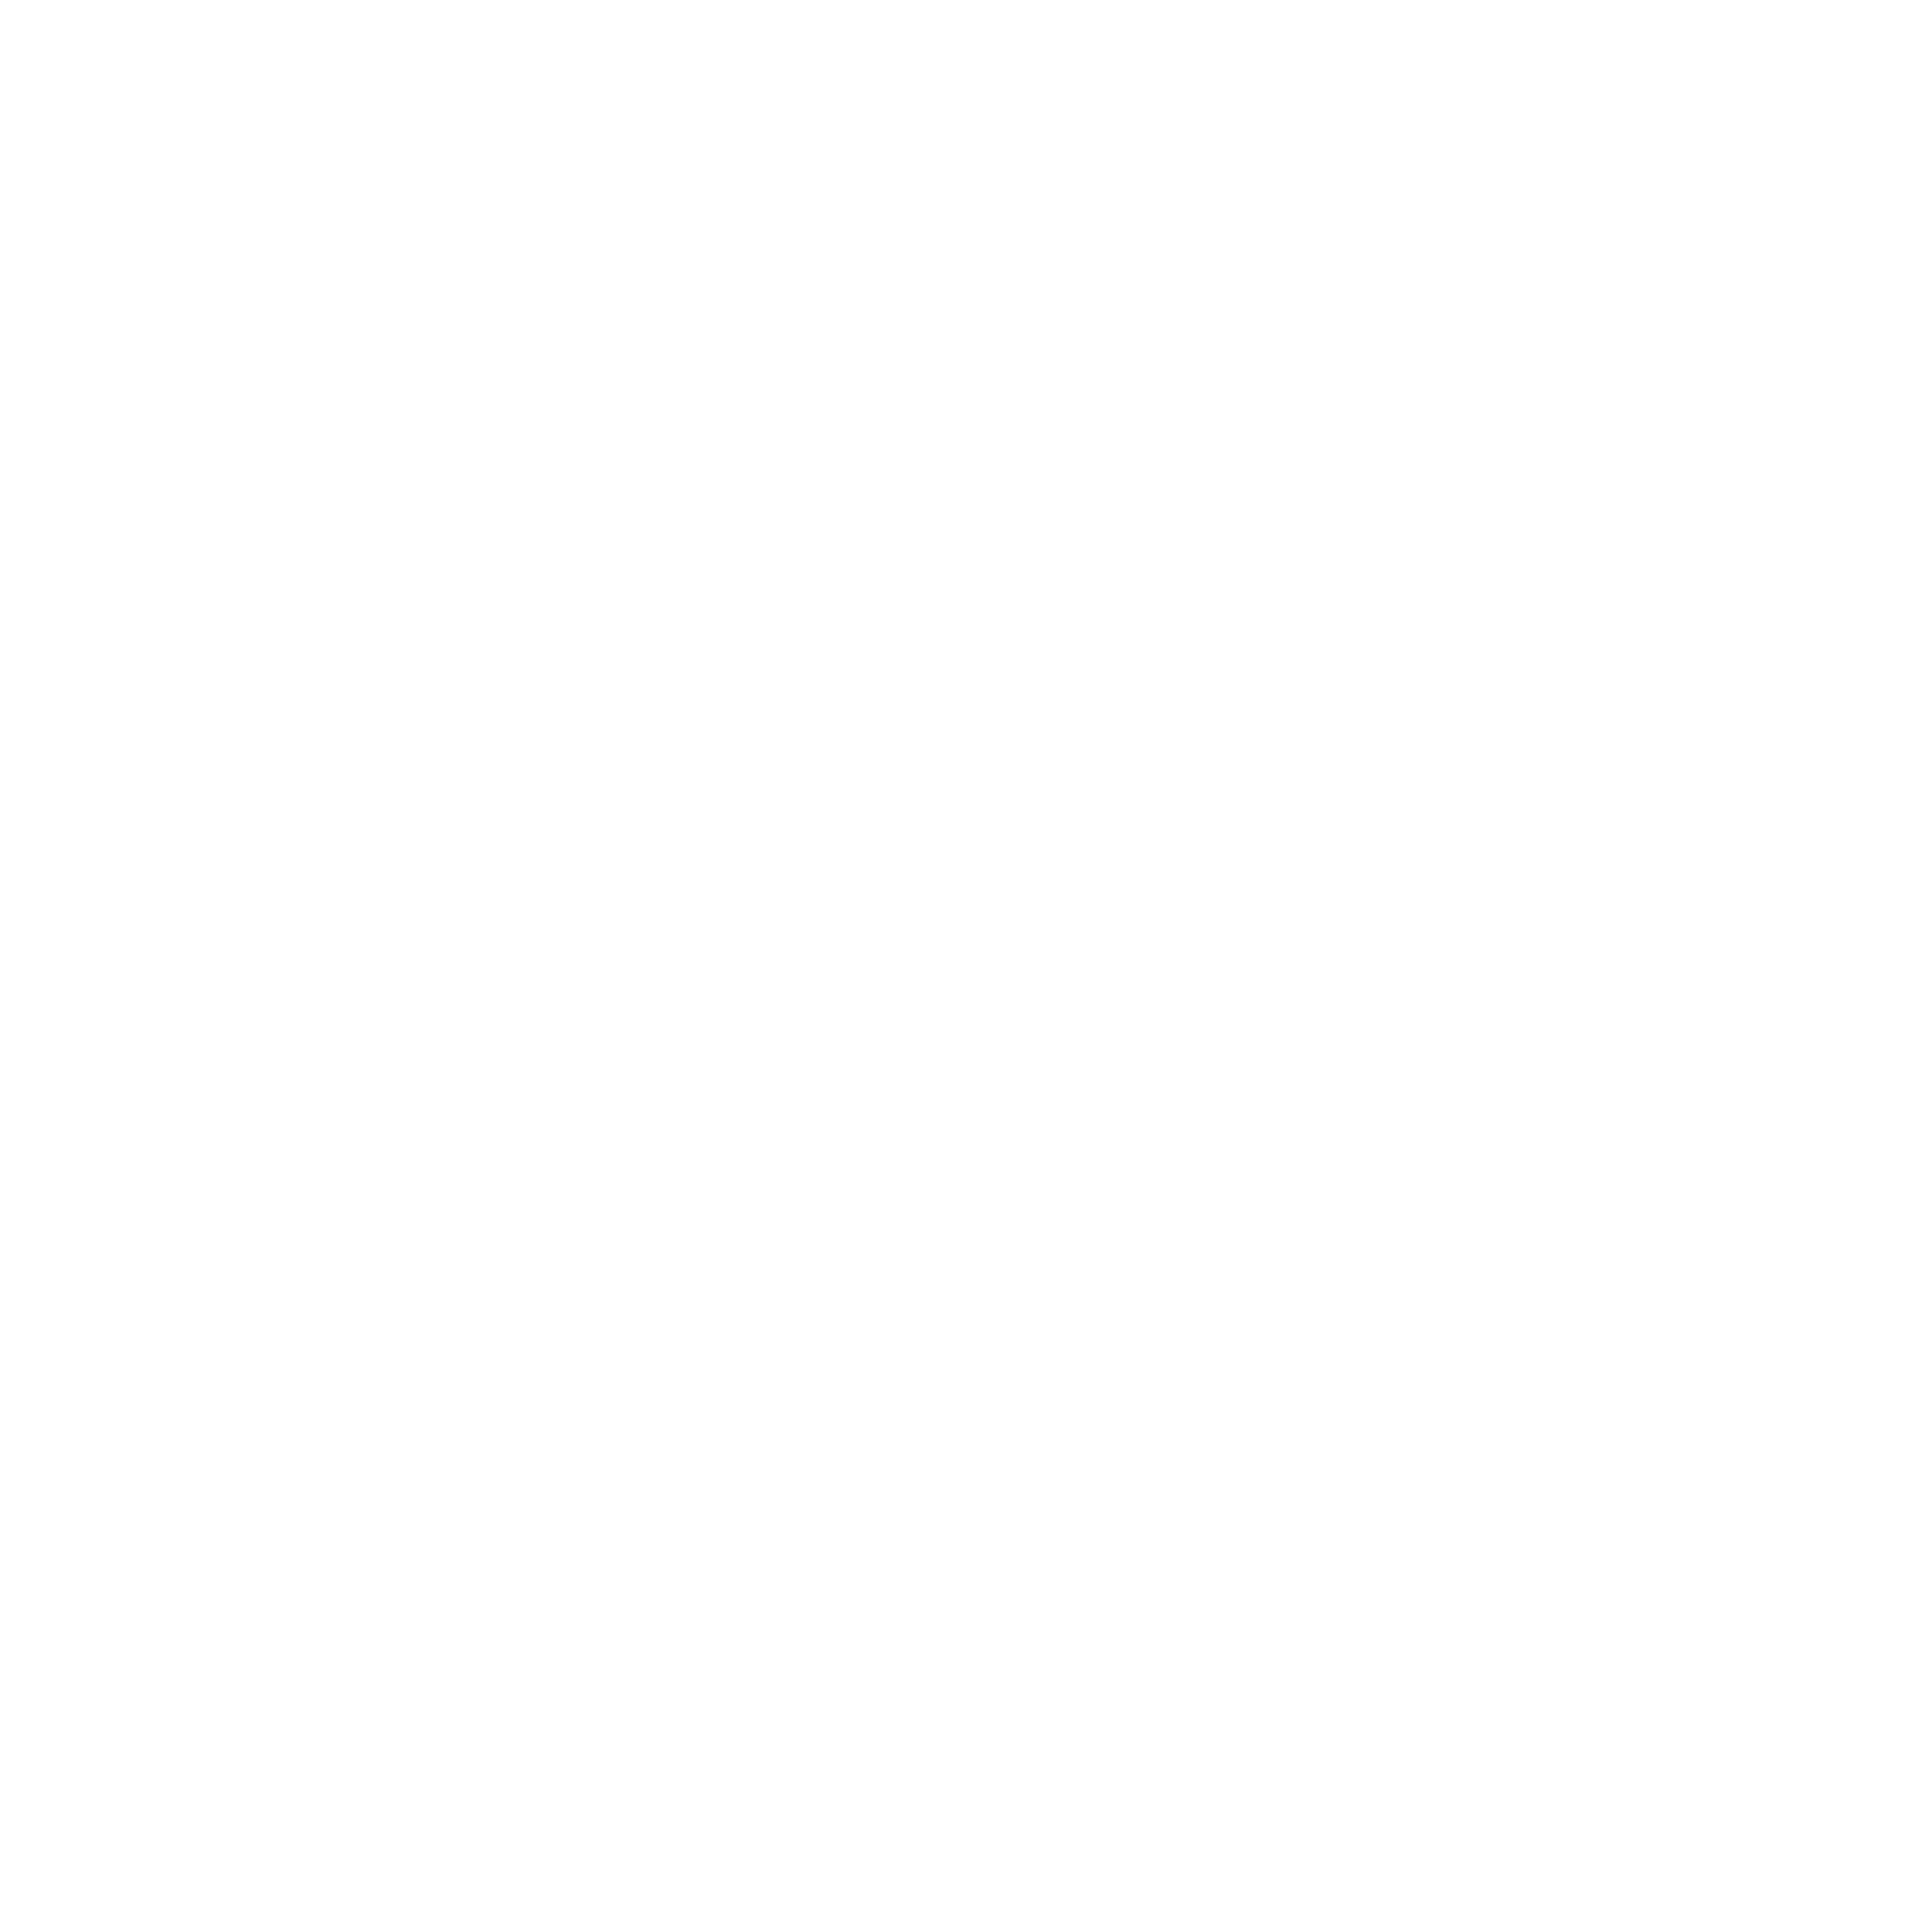 attribute-in-season-august